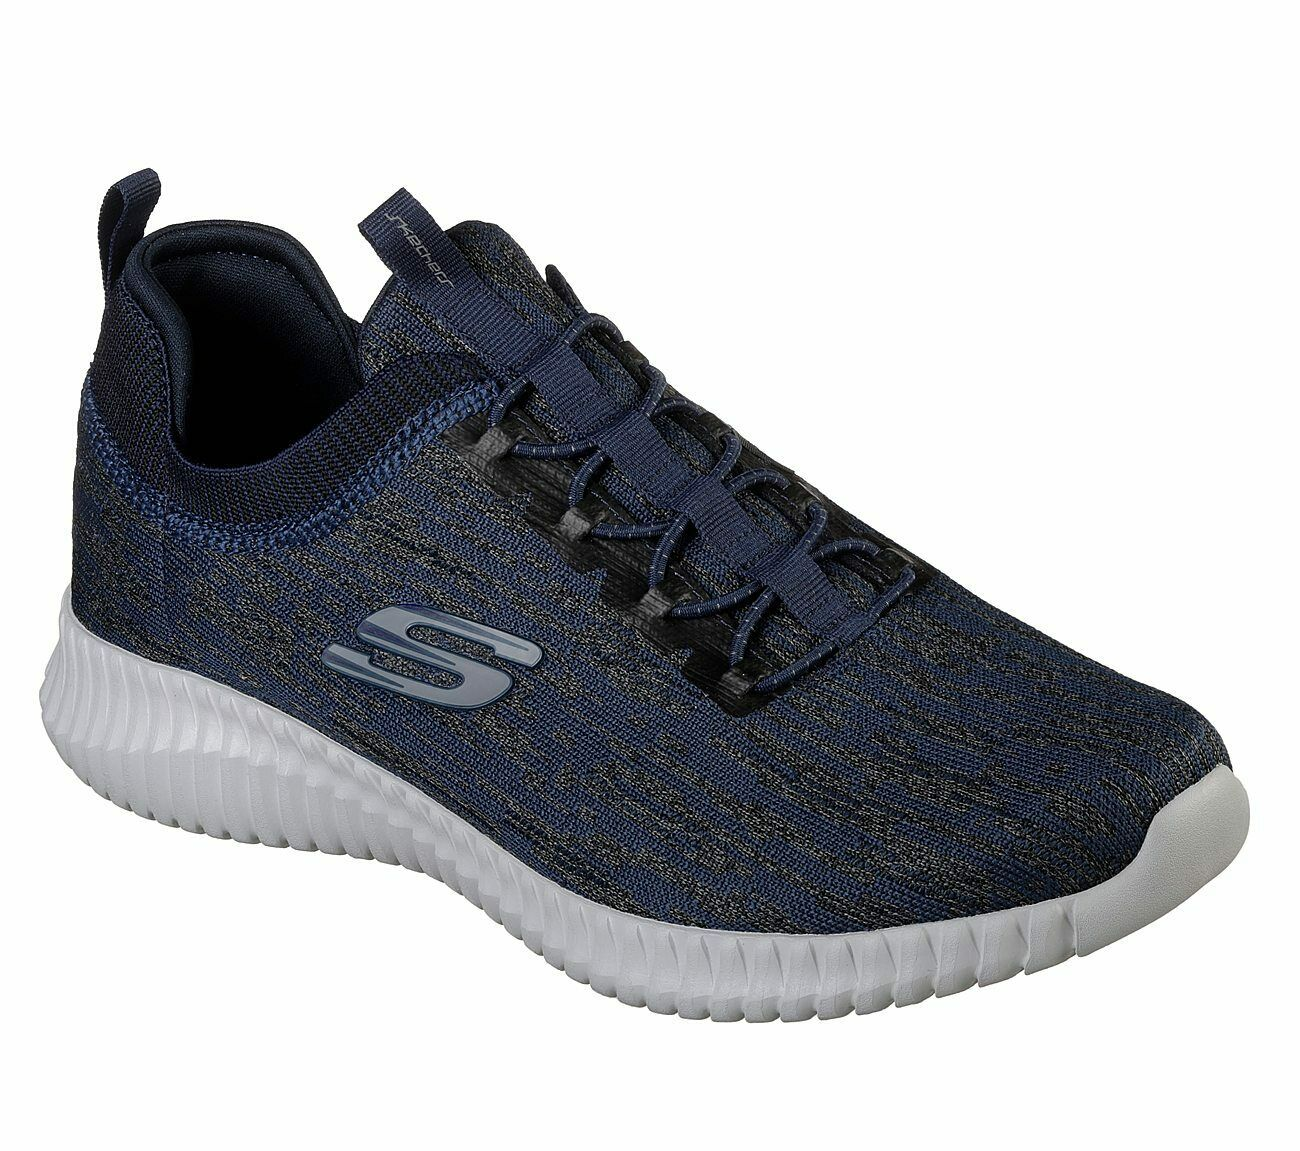 Skechers Elite Flex Hartnell Mens shoes Sport Insole Memory Foam